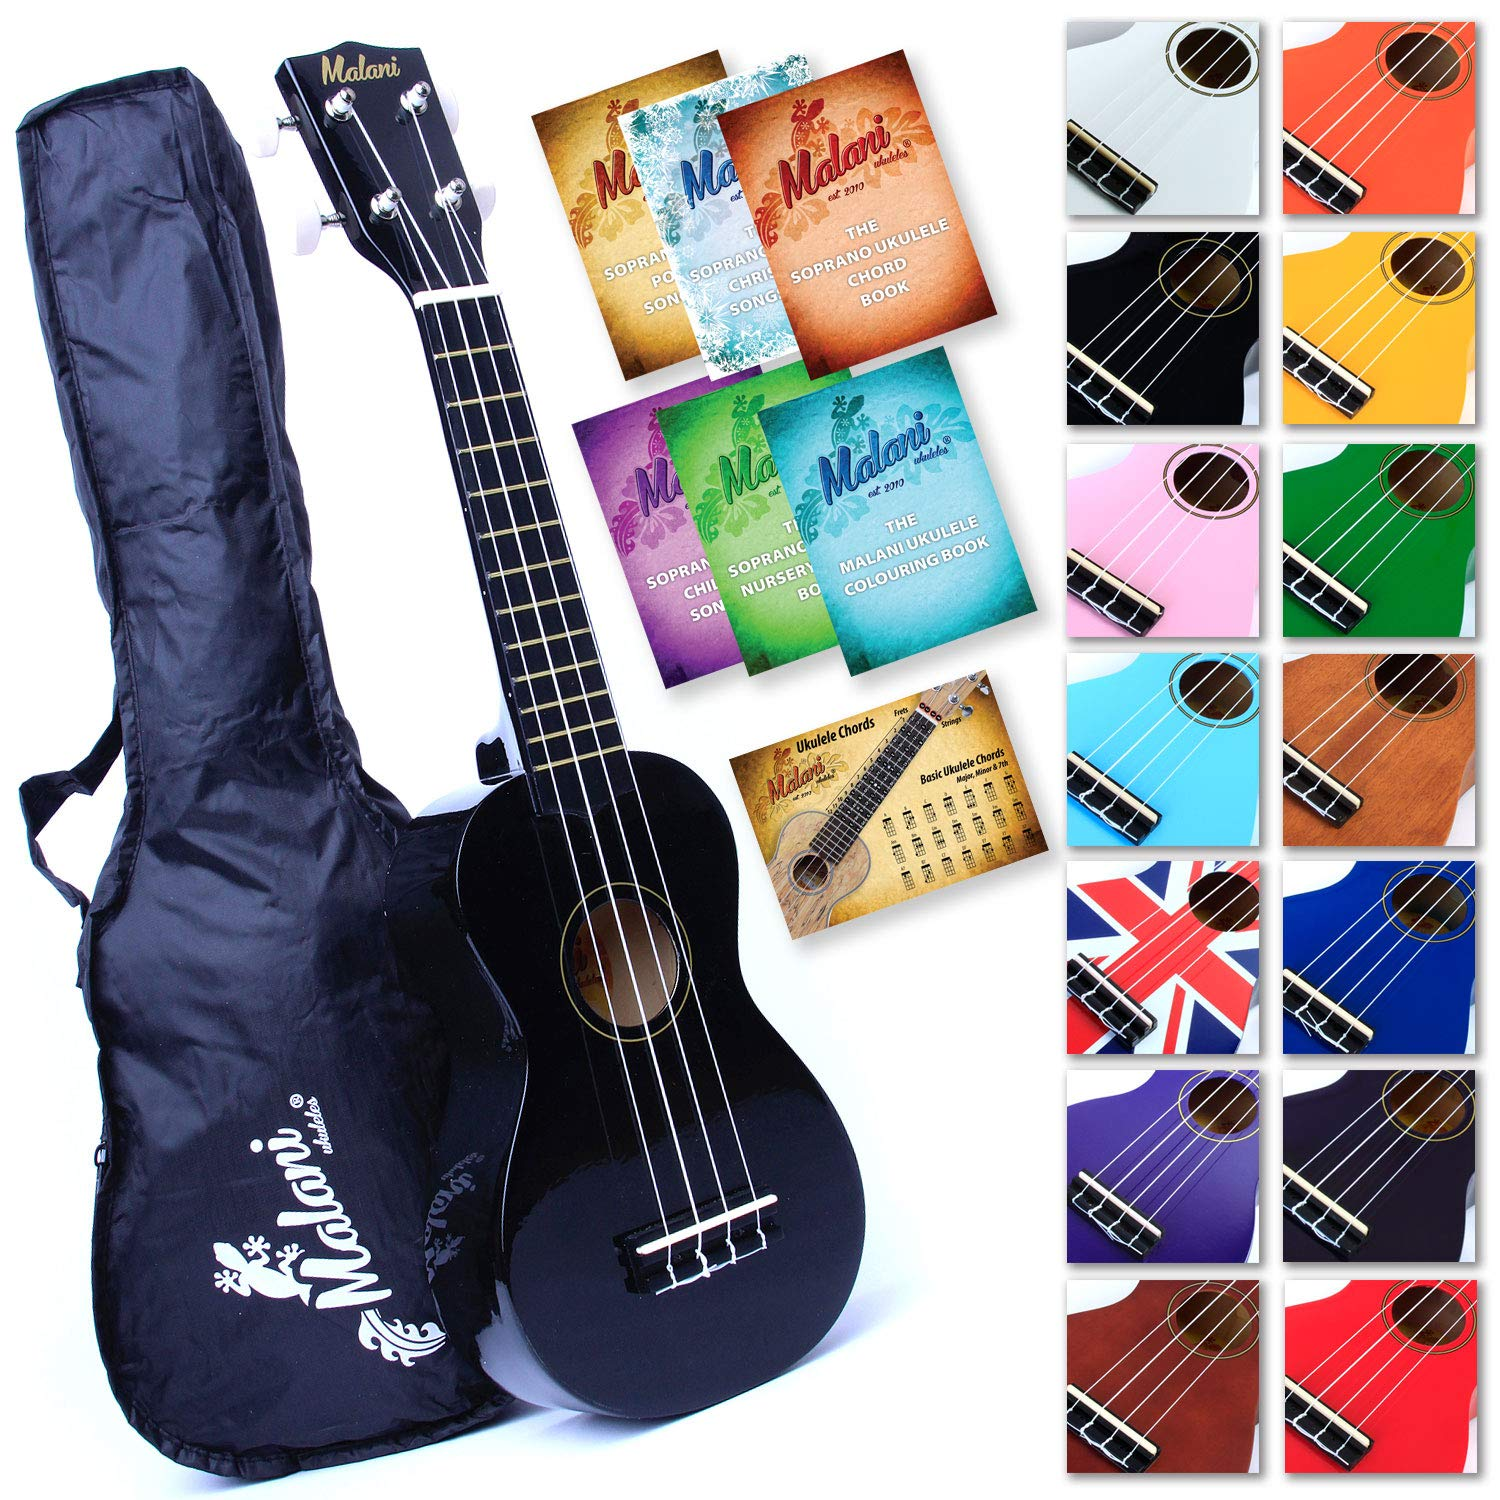 Best Black Soprano Ukulele With Bag Great Fun For Adult Beginners